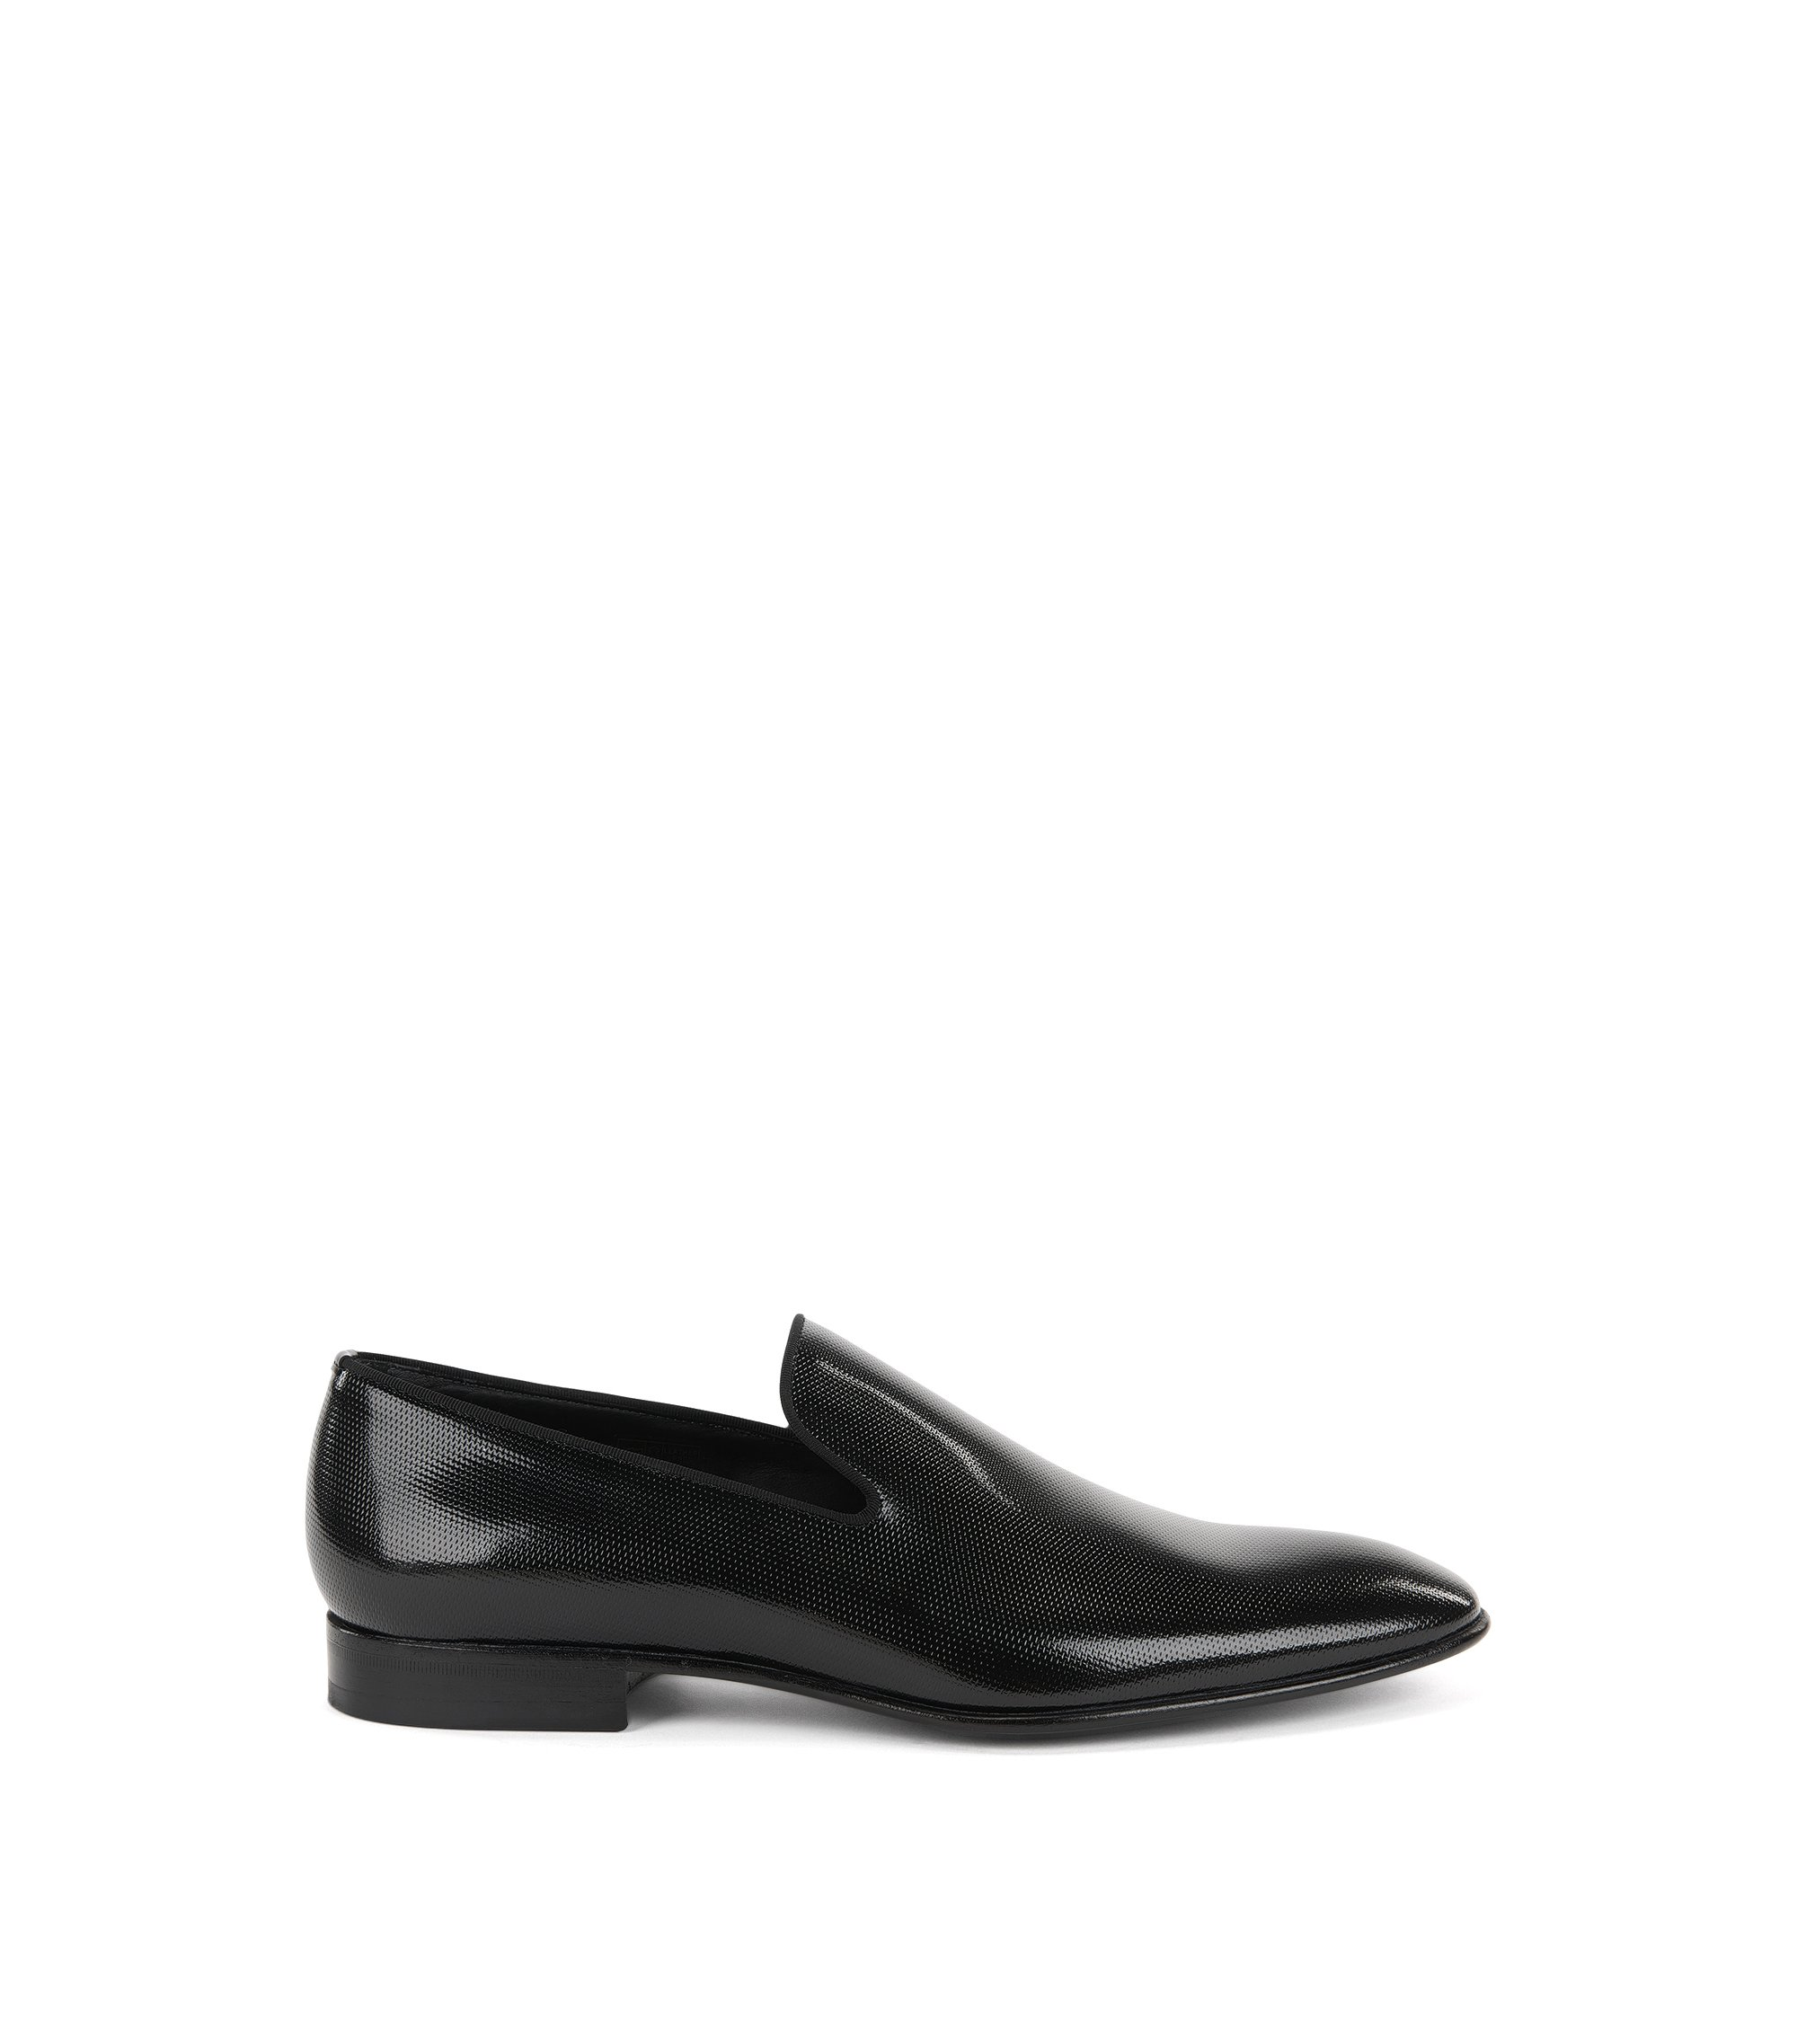 Mocassini slip-on in pelle verniciata stampata, Nero